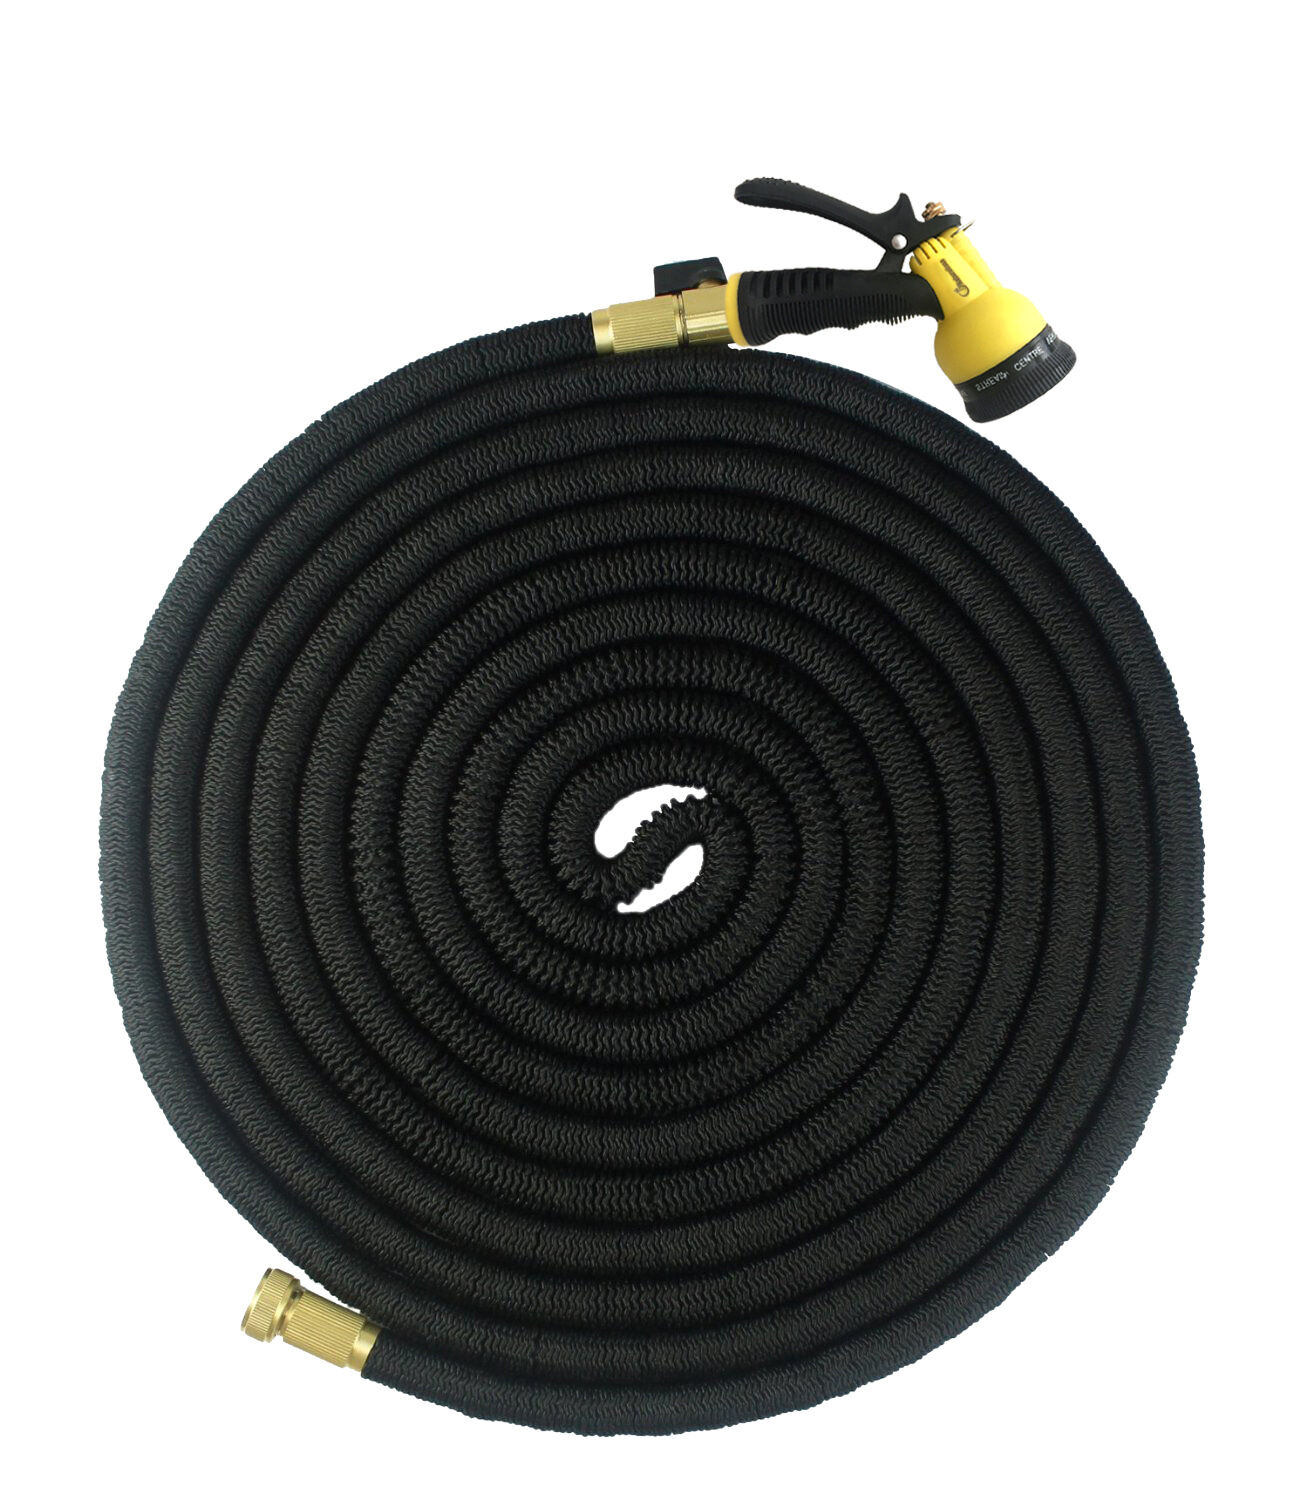 Stroger Expandable Flexible Garden Water Hose w/ Spray Nozzle 25 Feet